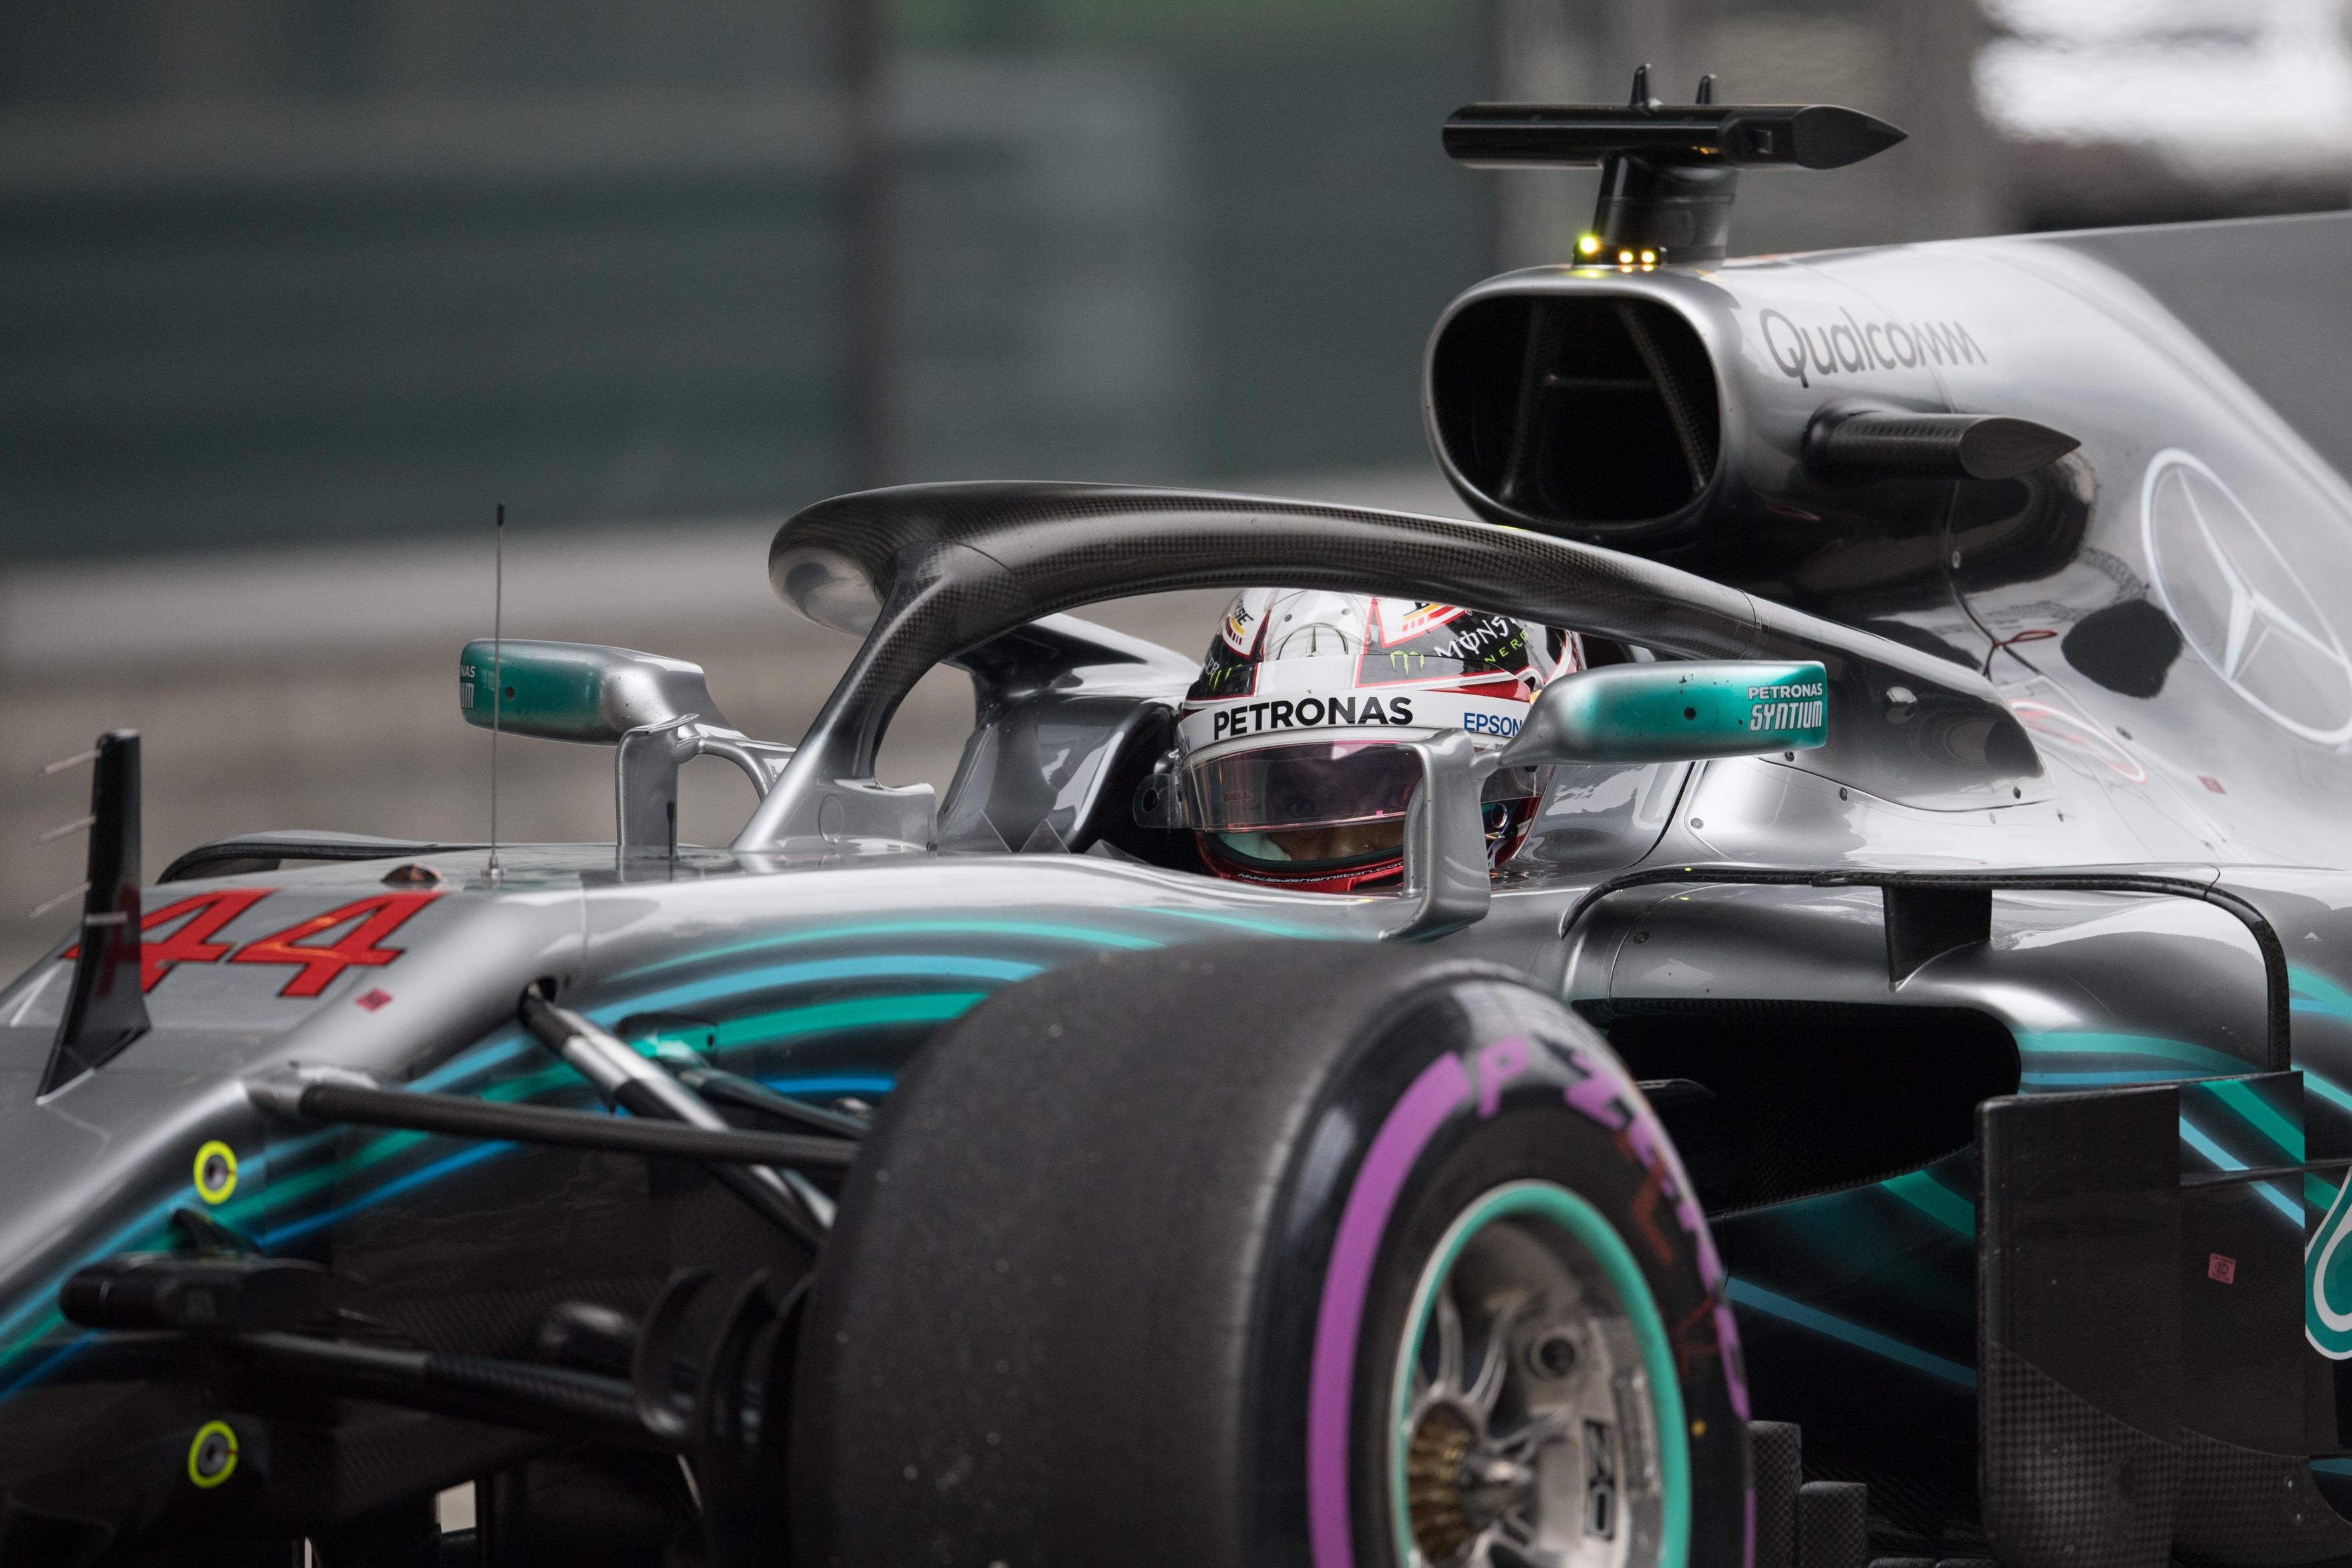 Mercedes have failed to win any of the first three races of the 2018 F1 season